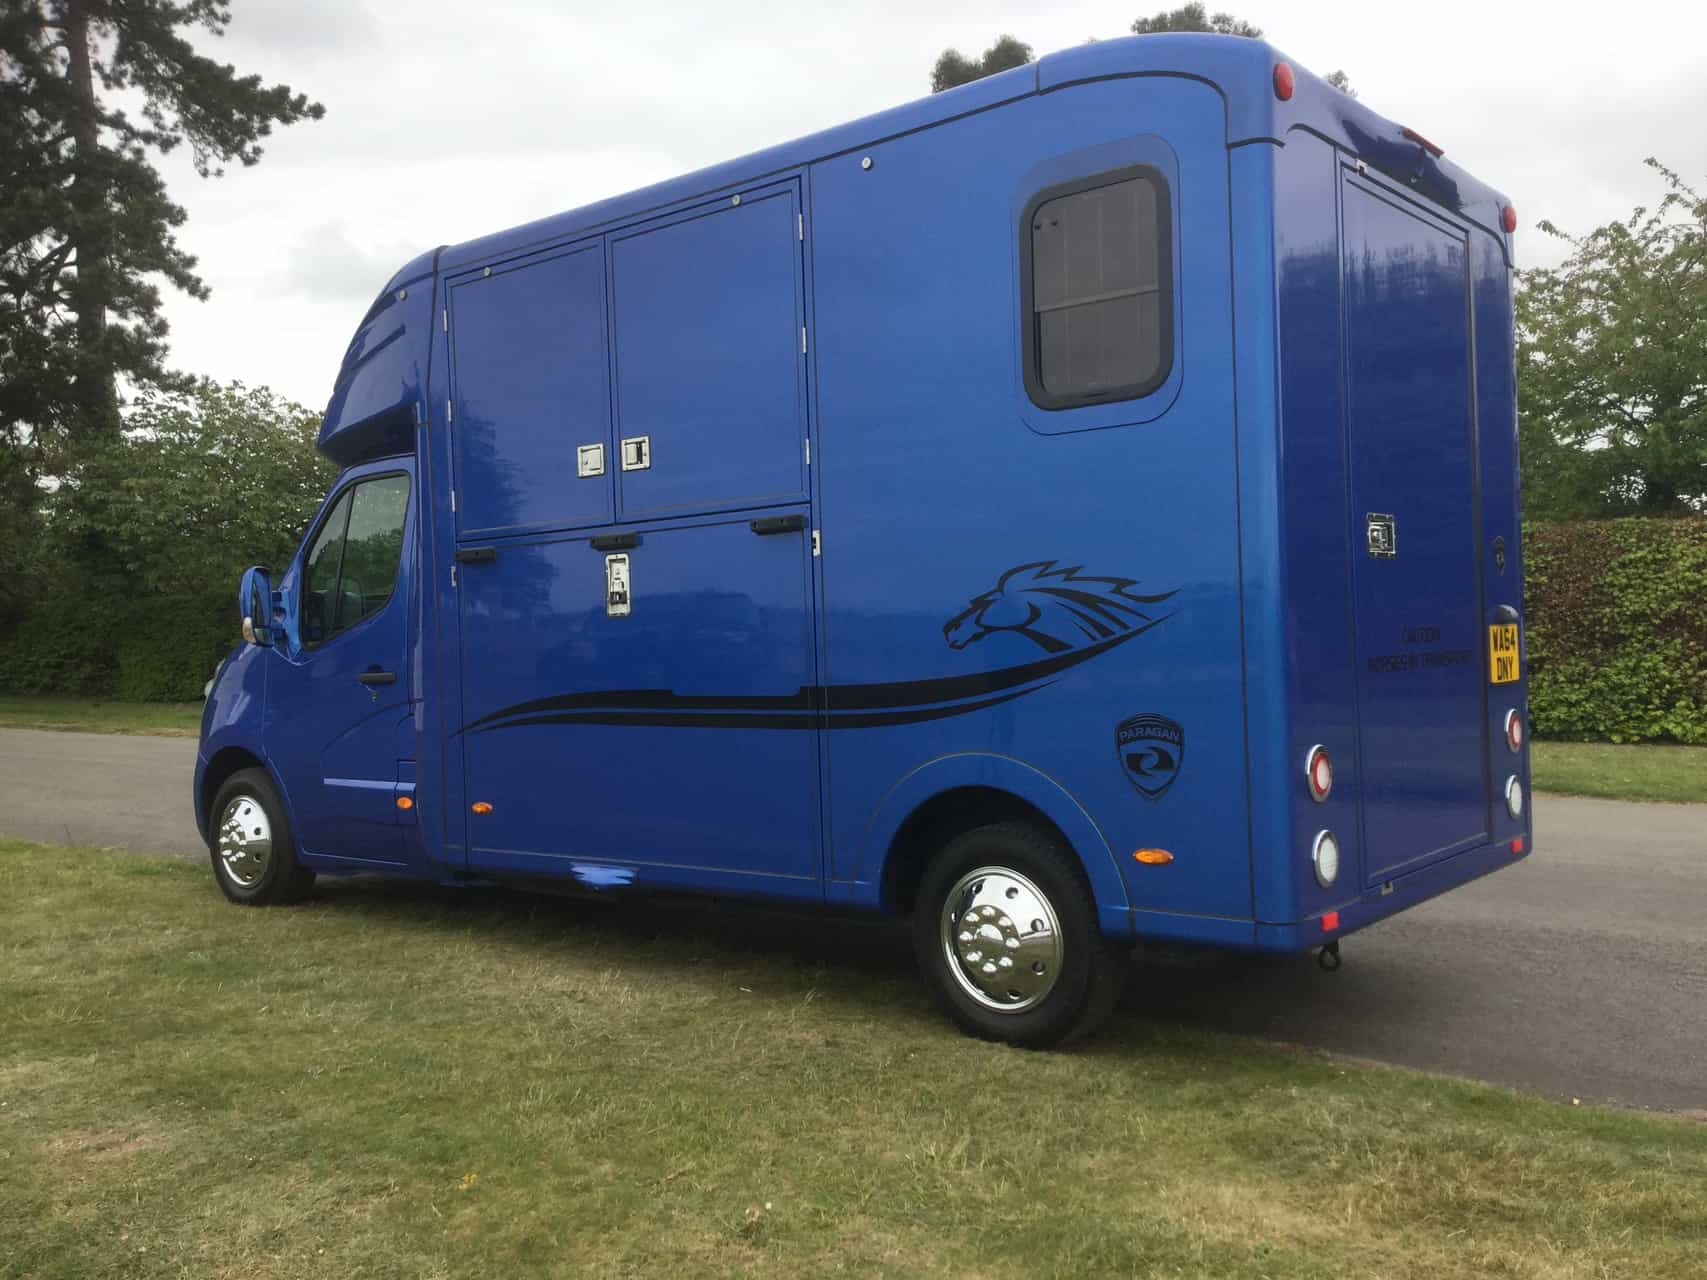 PARAGON 2 , Top Quality ,Ideal Racebox/Mare and Foal, 10,000 miles 14 Reg Renault Master   £29,950 +vat with large horse area and storage , Electric Pack, Air Con, Sat Nav. CCTV